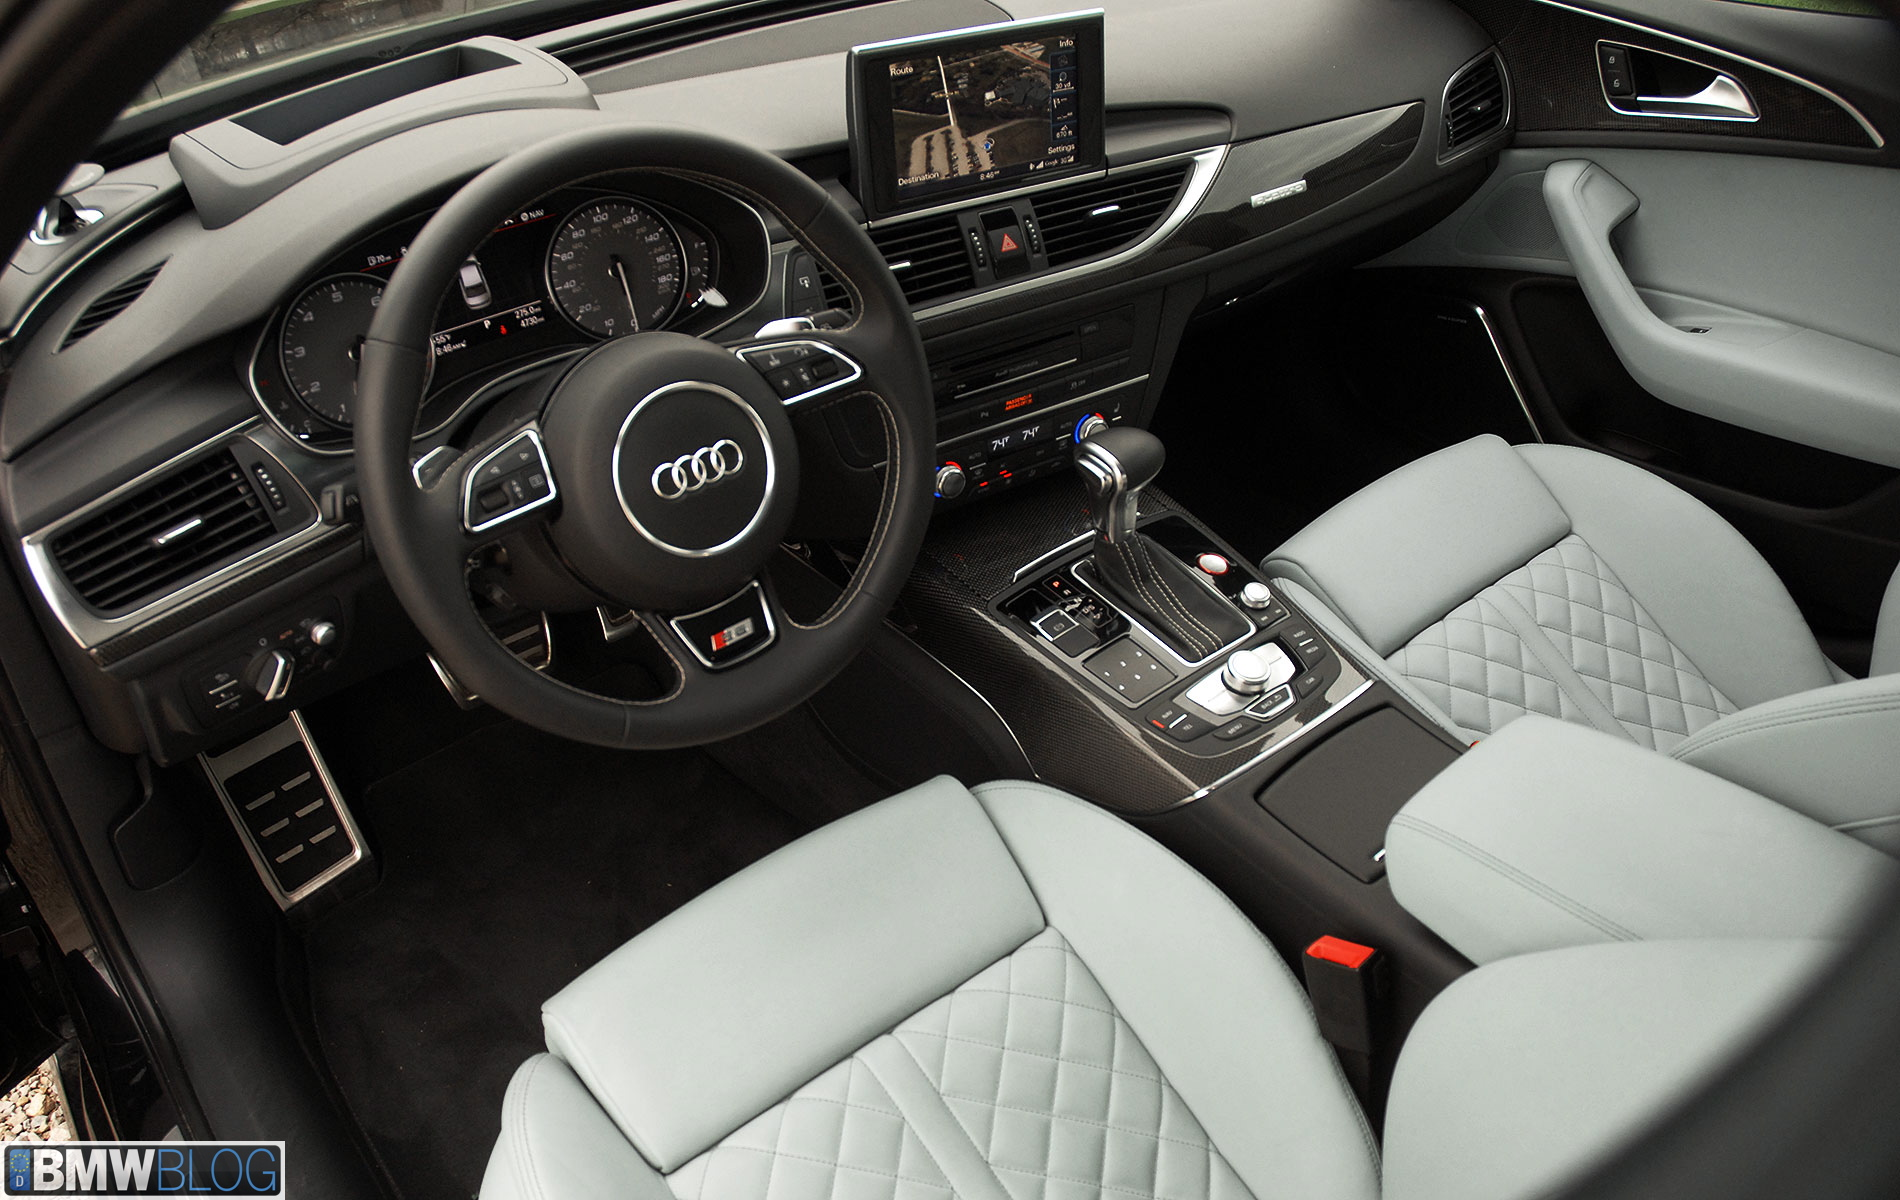 2013 Audi S6 Test Drive and Review